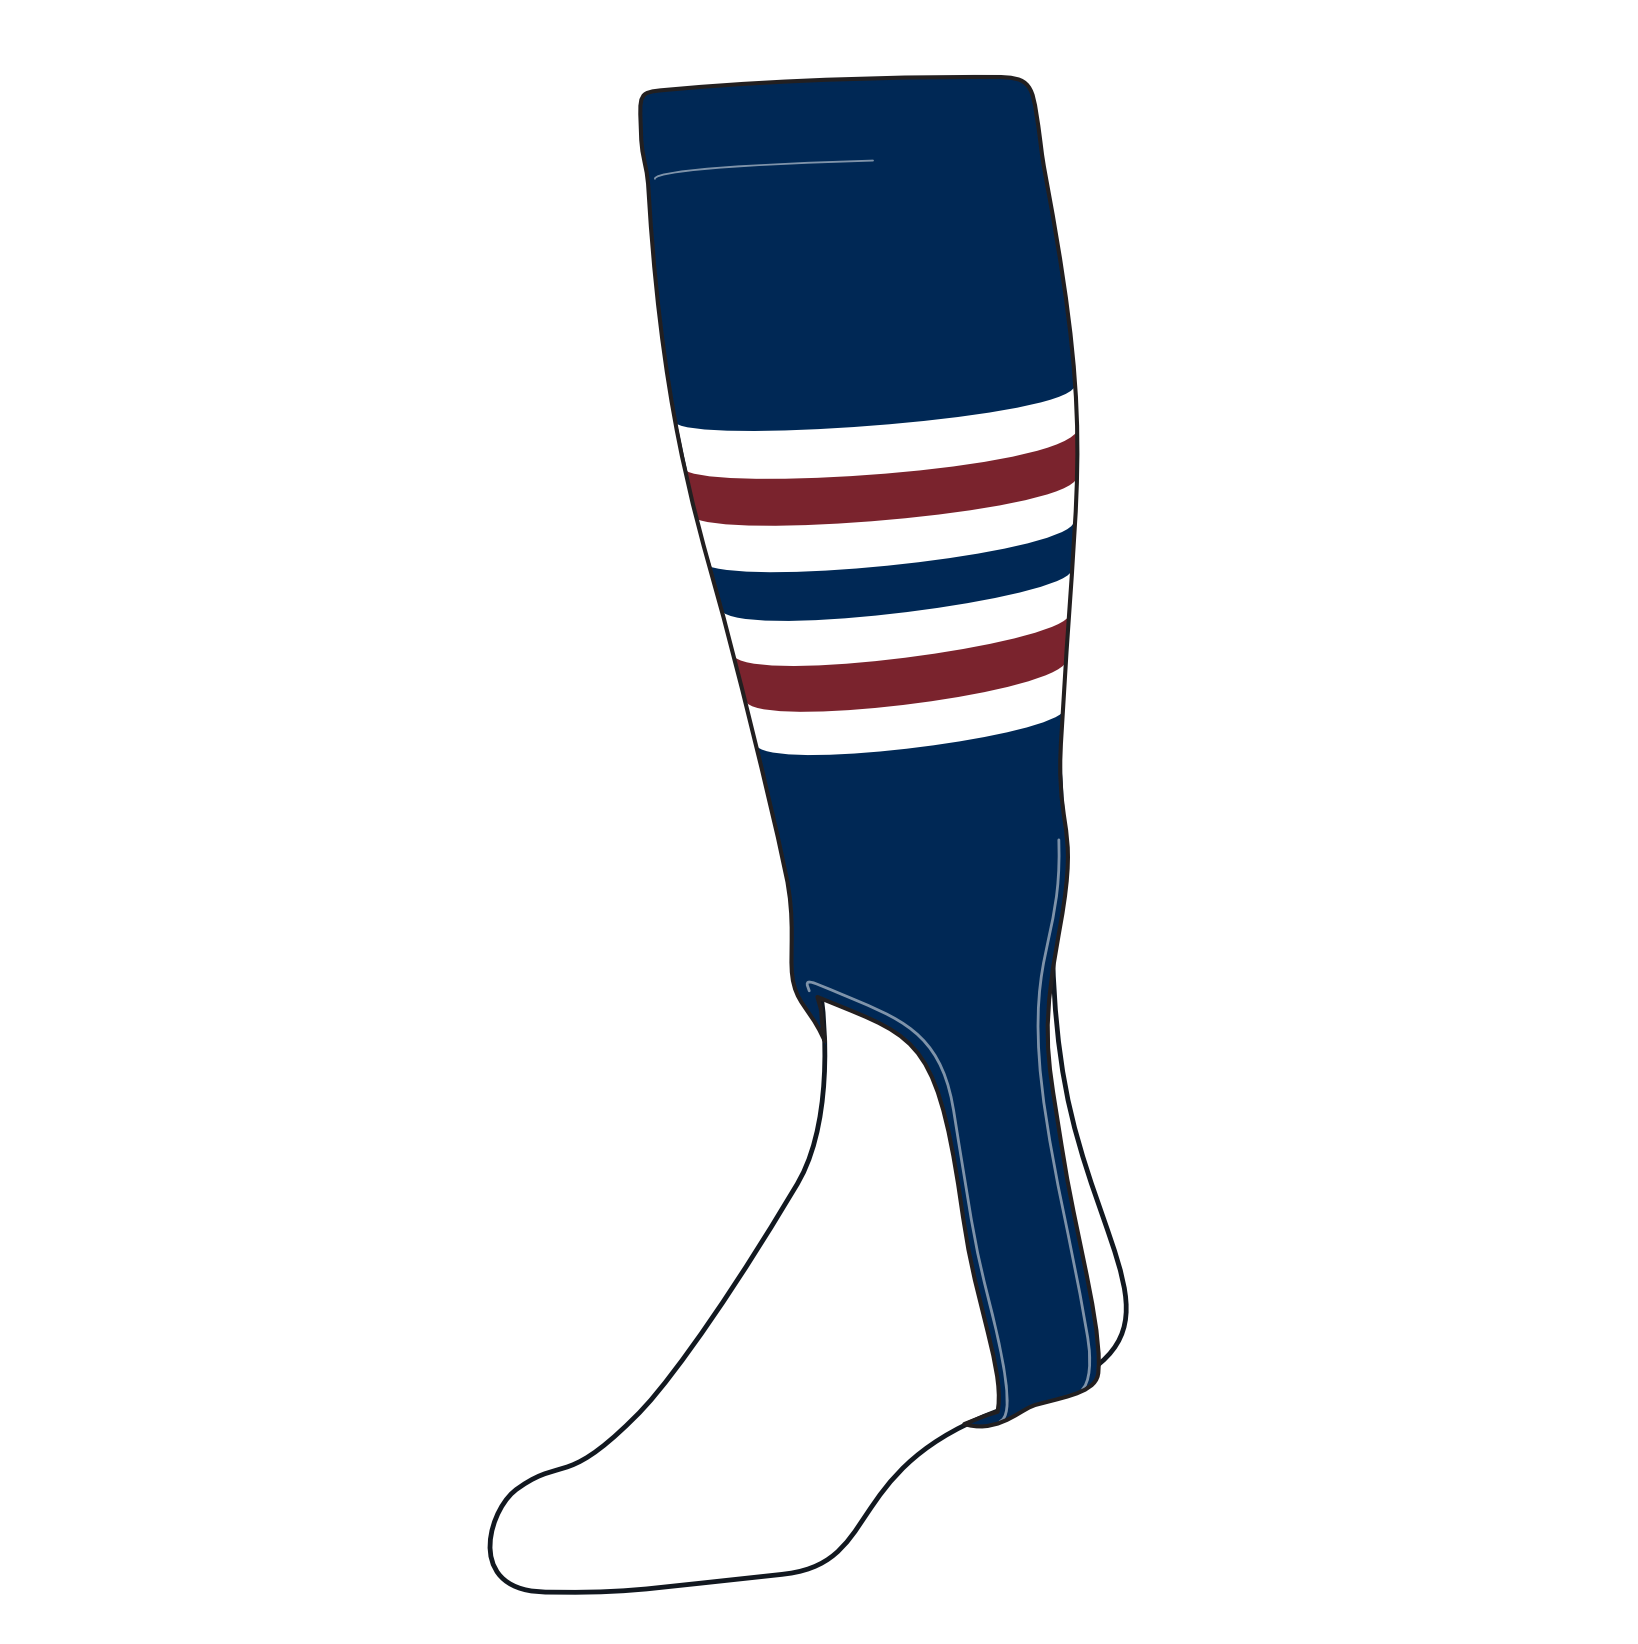 TCK Baseball Stirrups Medium (200I, 5in) Navy, White, Cardinal